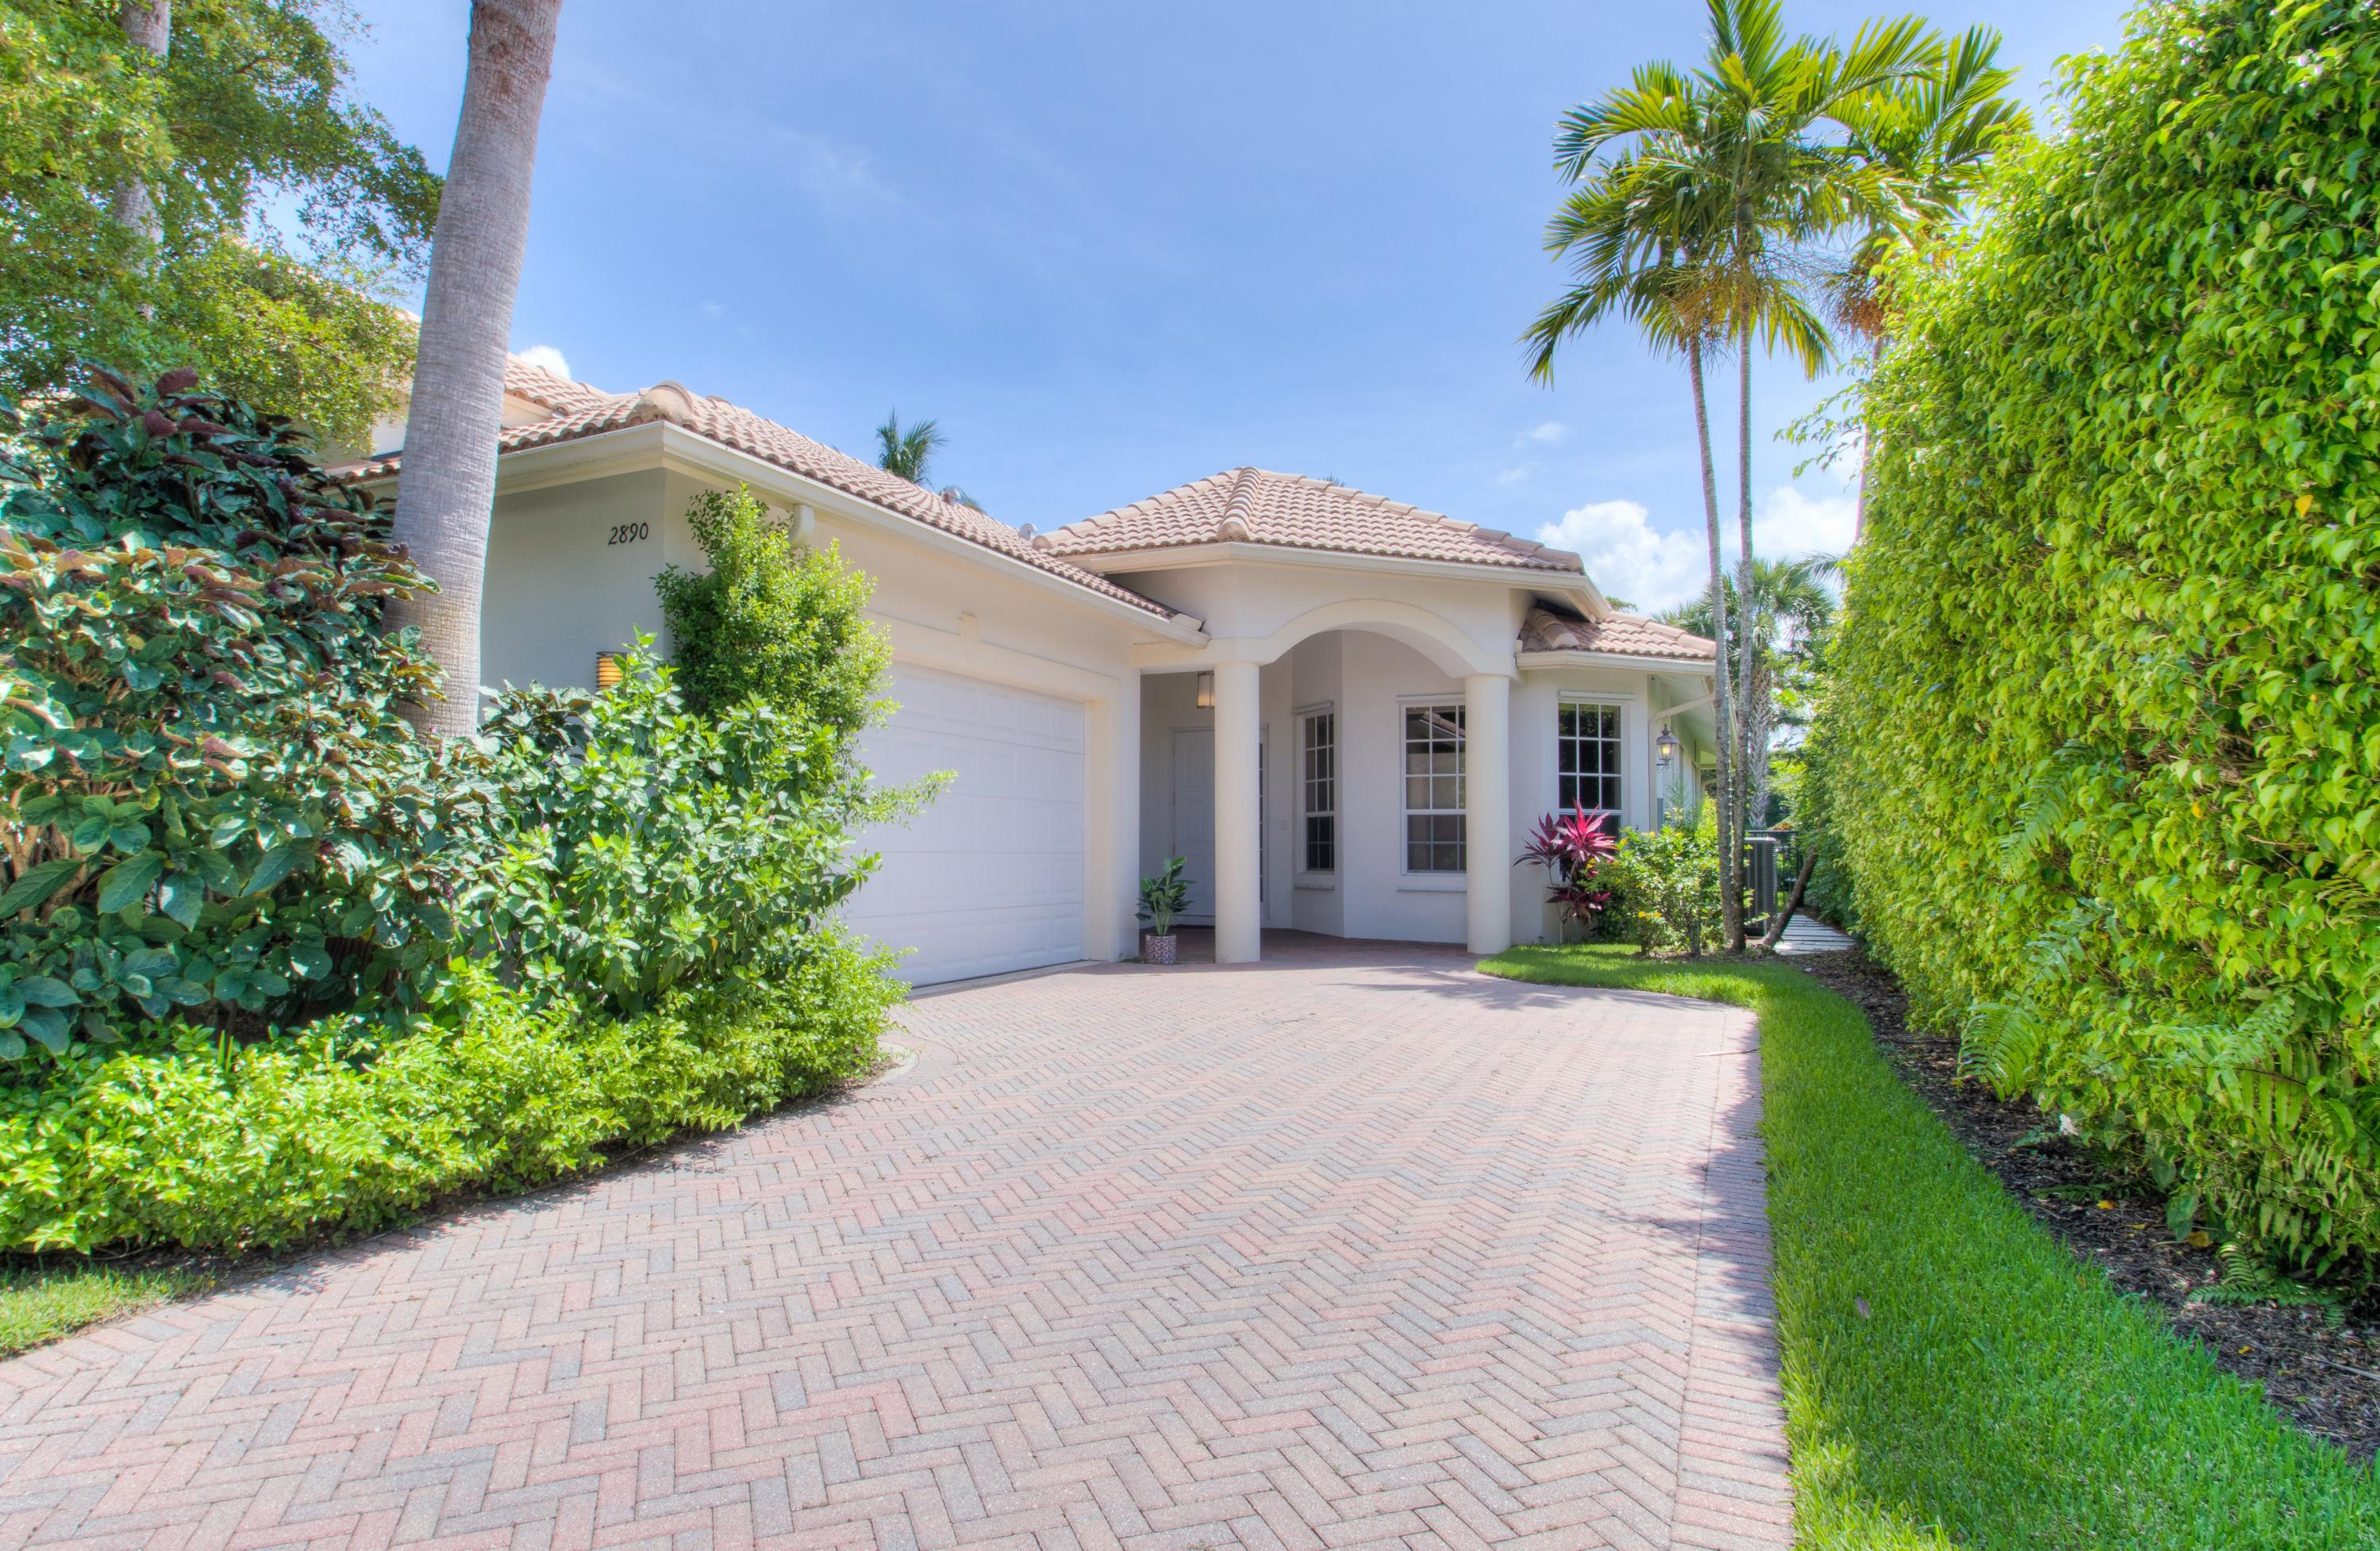 2890 Twin Oaks Way, Wellington, Florida 33414, 3 Bedrooms Bedrooms, ,3 BathroomsBathrooms,Townhouse,For Rent,Palm Beach Polo & Country Club,Twin Oaks,1,RX-10555316